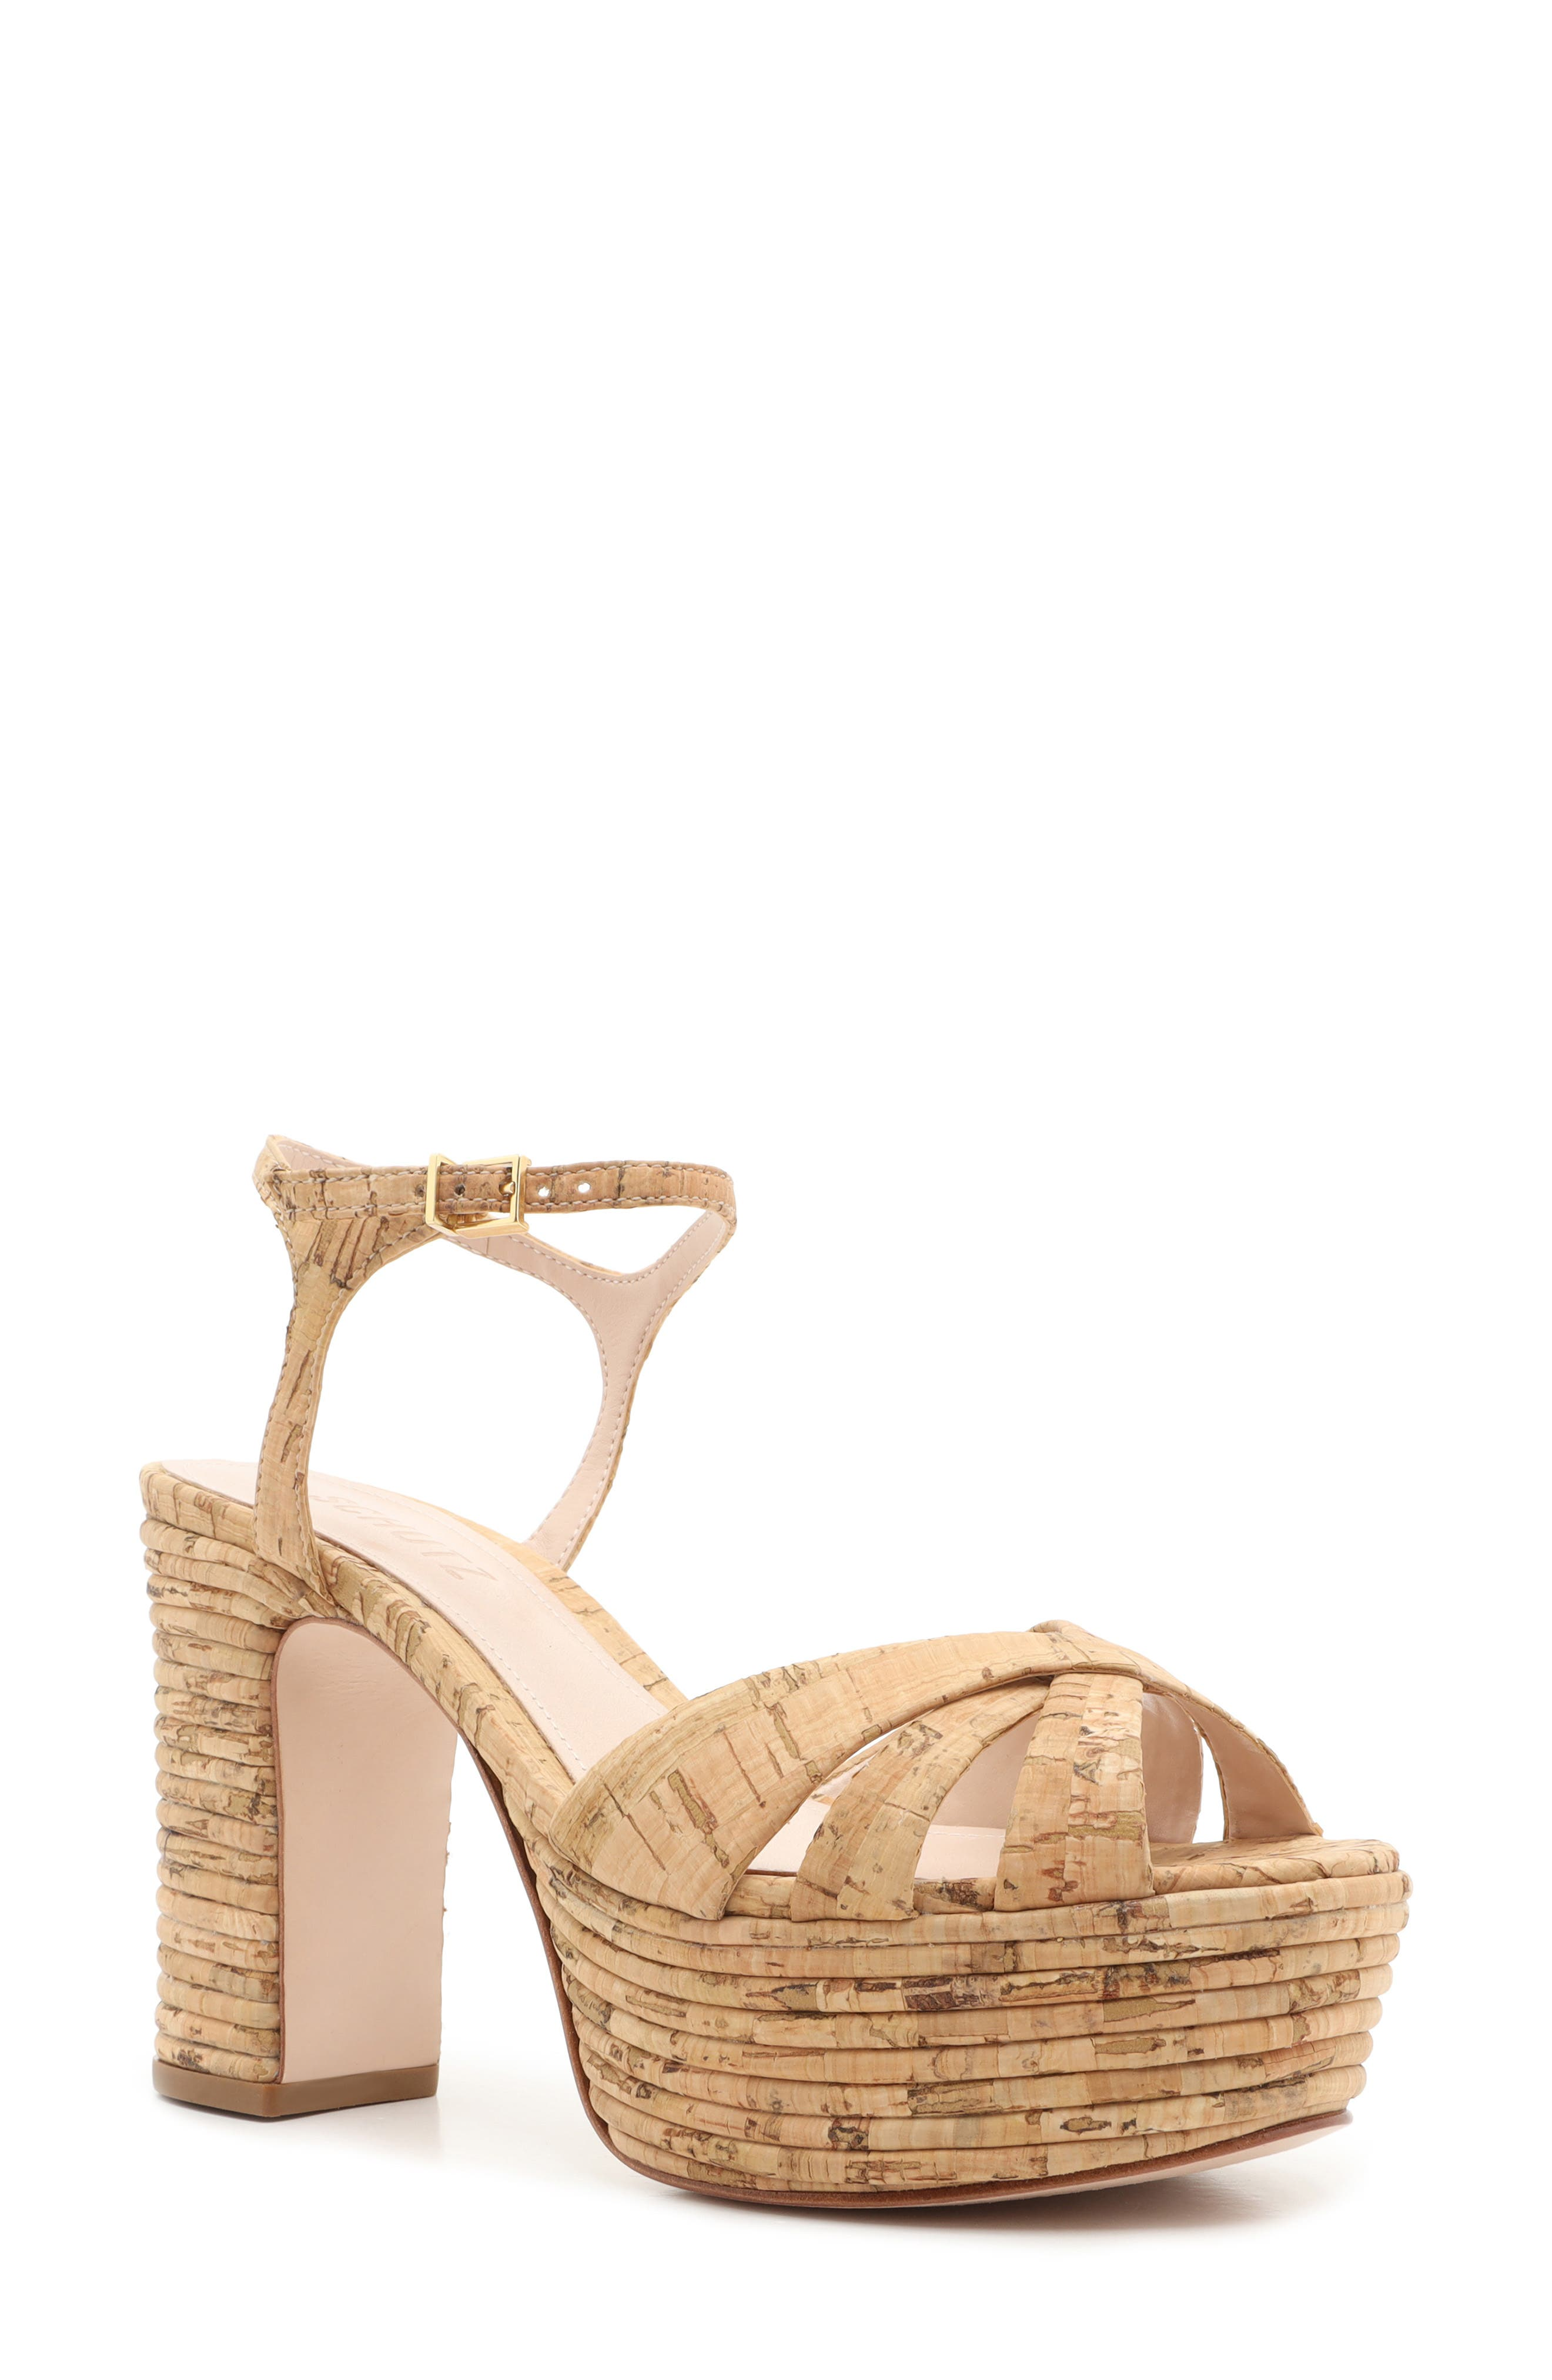 Ribbed bands of cork wrap up the glam-goddess vibe of these towering peep-toe platforms with style to spare. Style Name: Schutz Darila Cork Platform Sandal (Women). Style Number: 6004538. Available in stores.